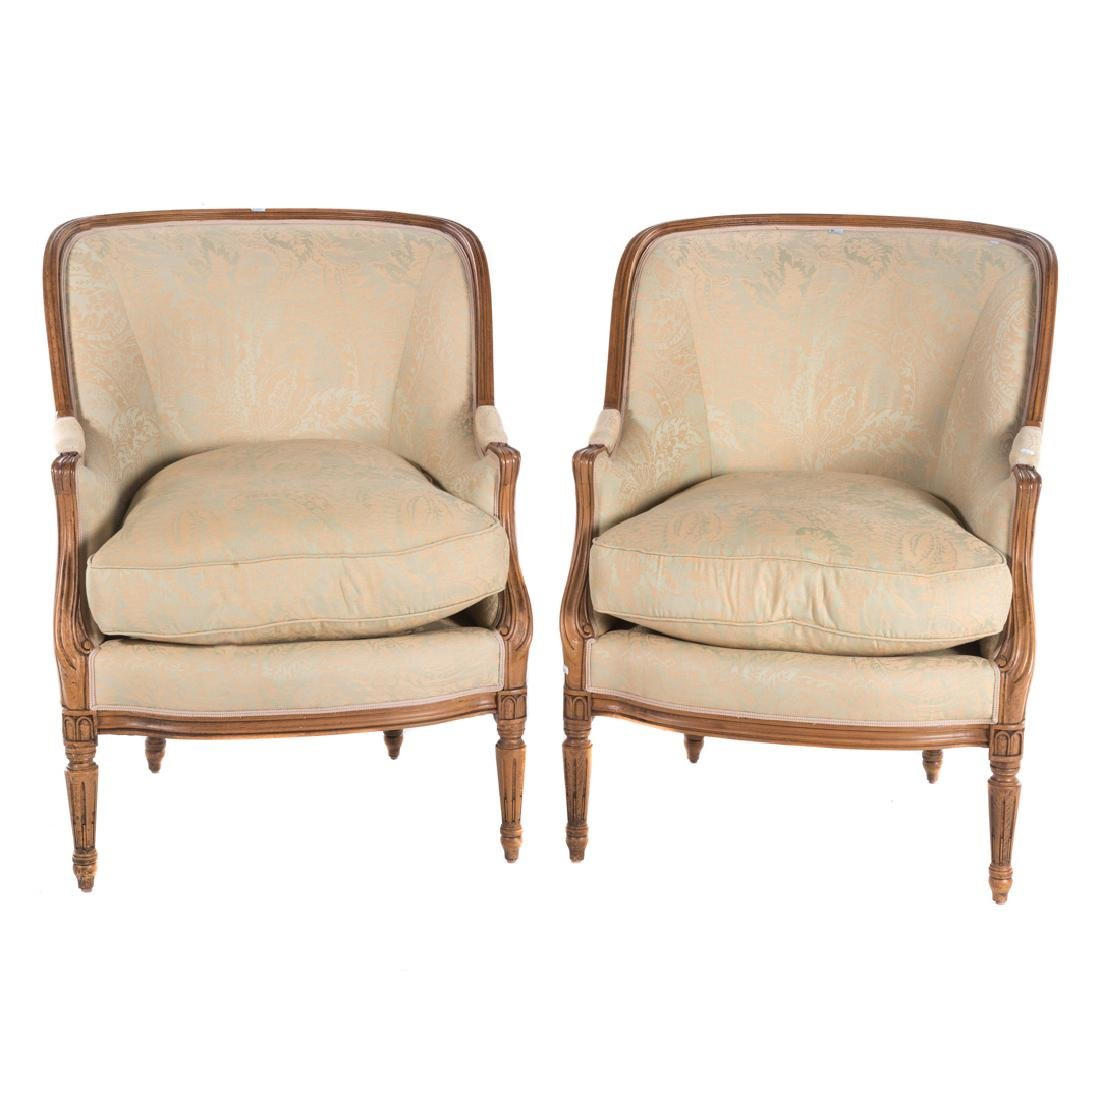 Pair Louis XVI style carved fruitwood bergeres